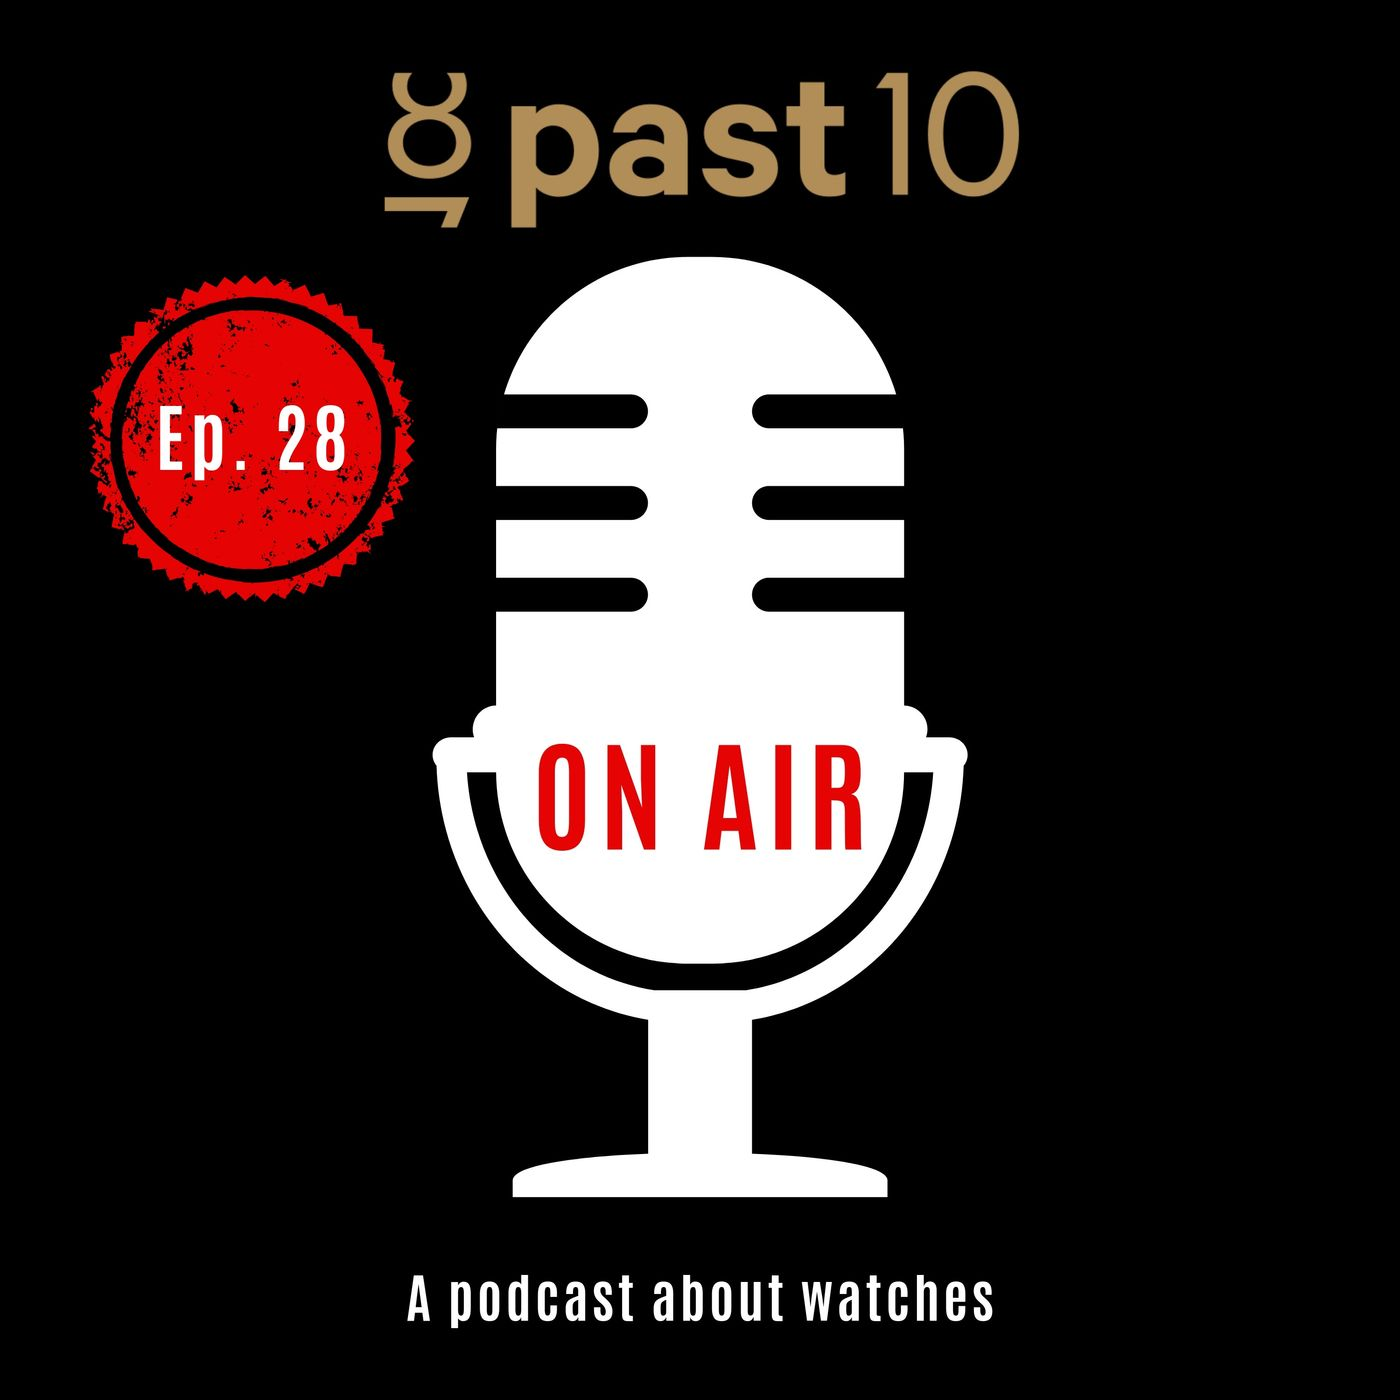 Episode 28 - Coronavirus Impact On Watch Fairs, Sales Etc